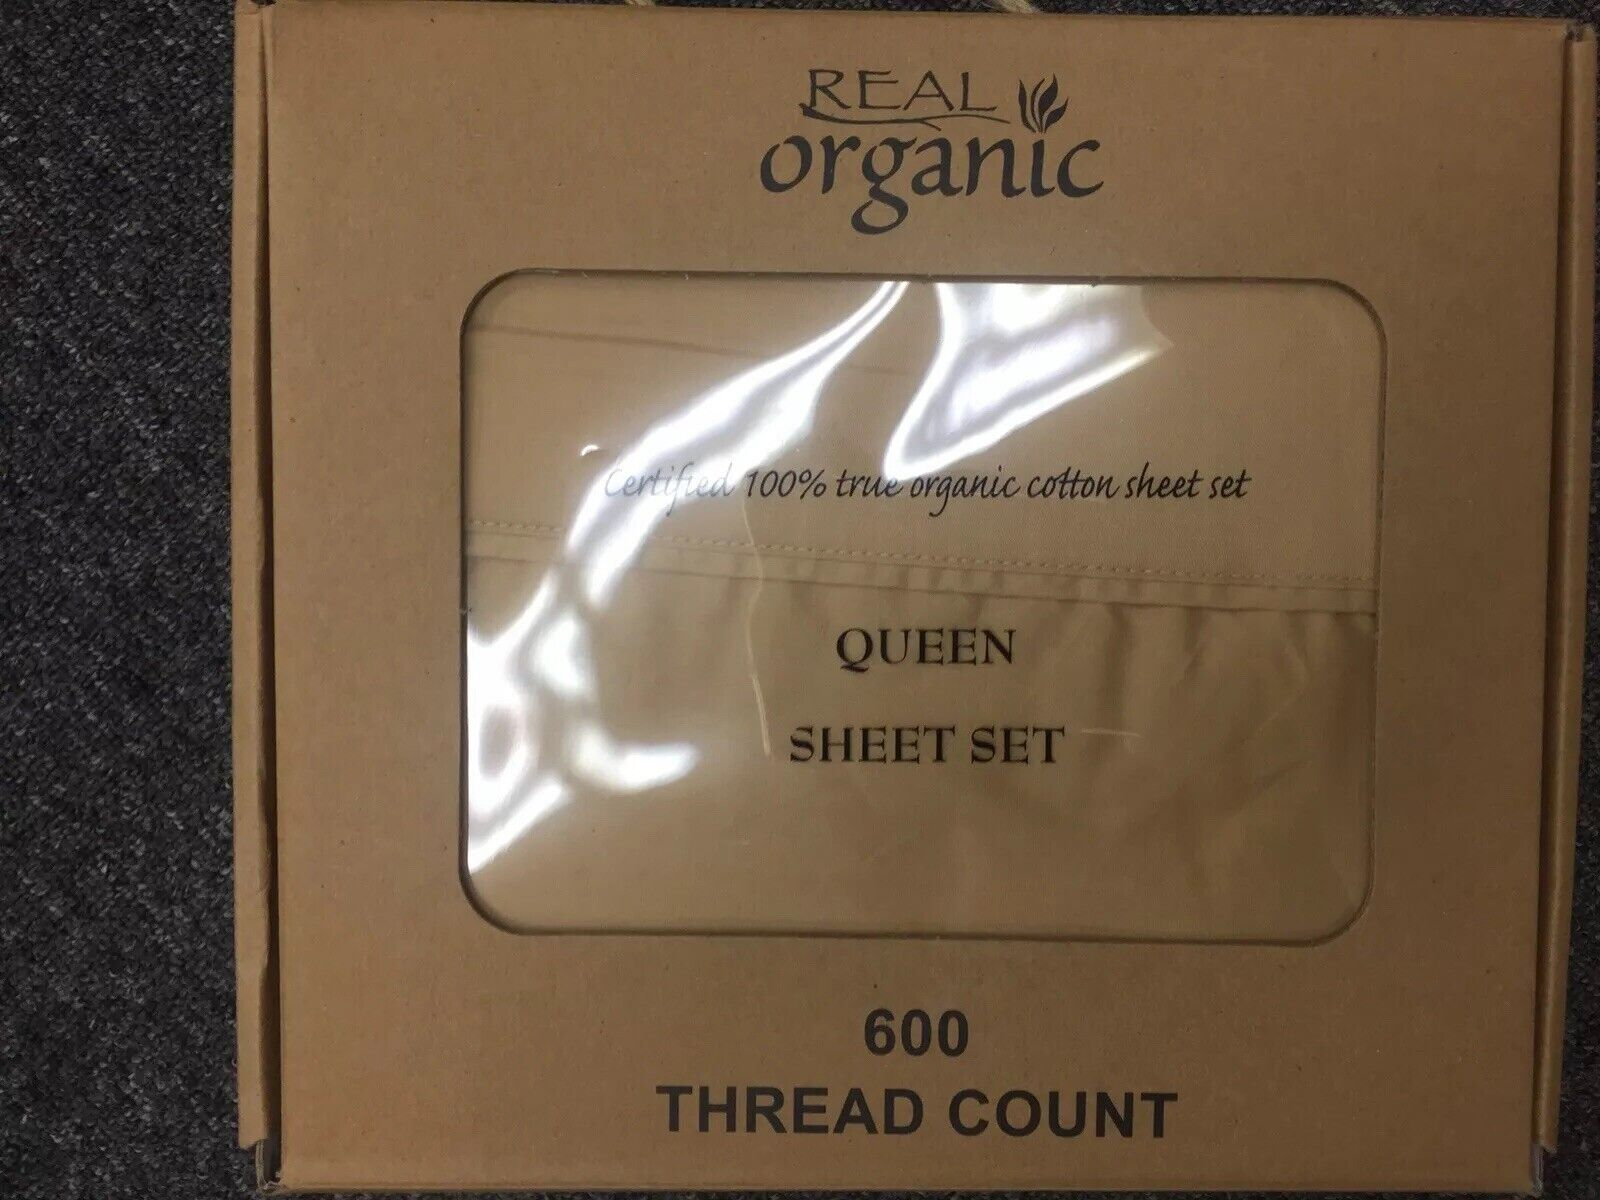 4pcs 100% Organic Cotton Bed Sheet Set 600 TC, Regular gold